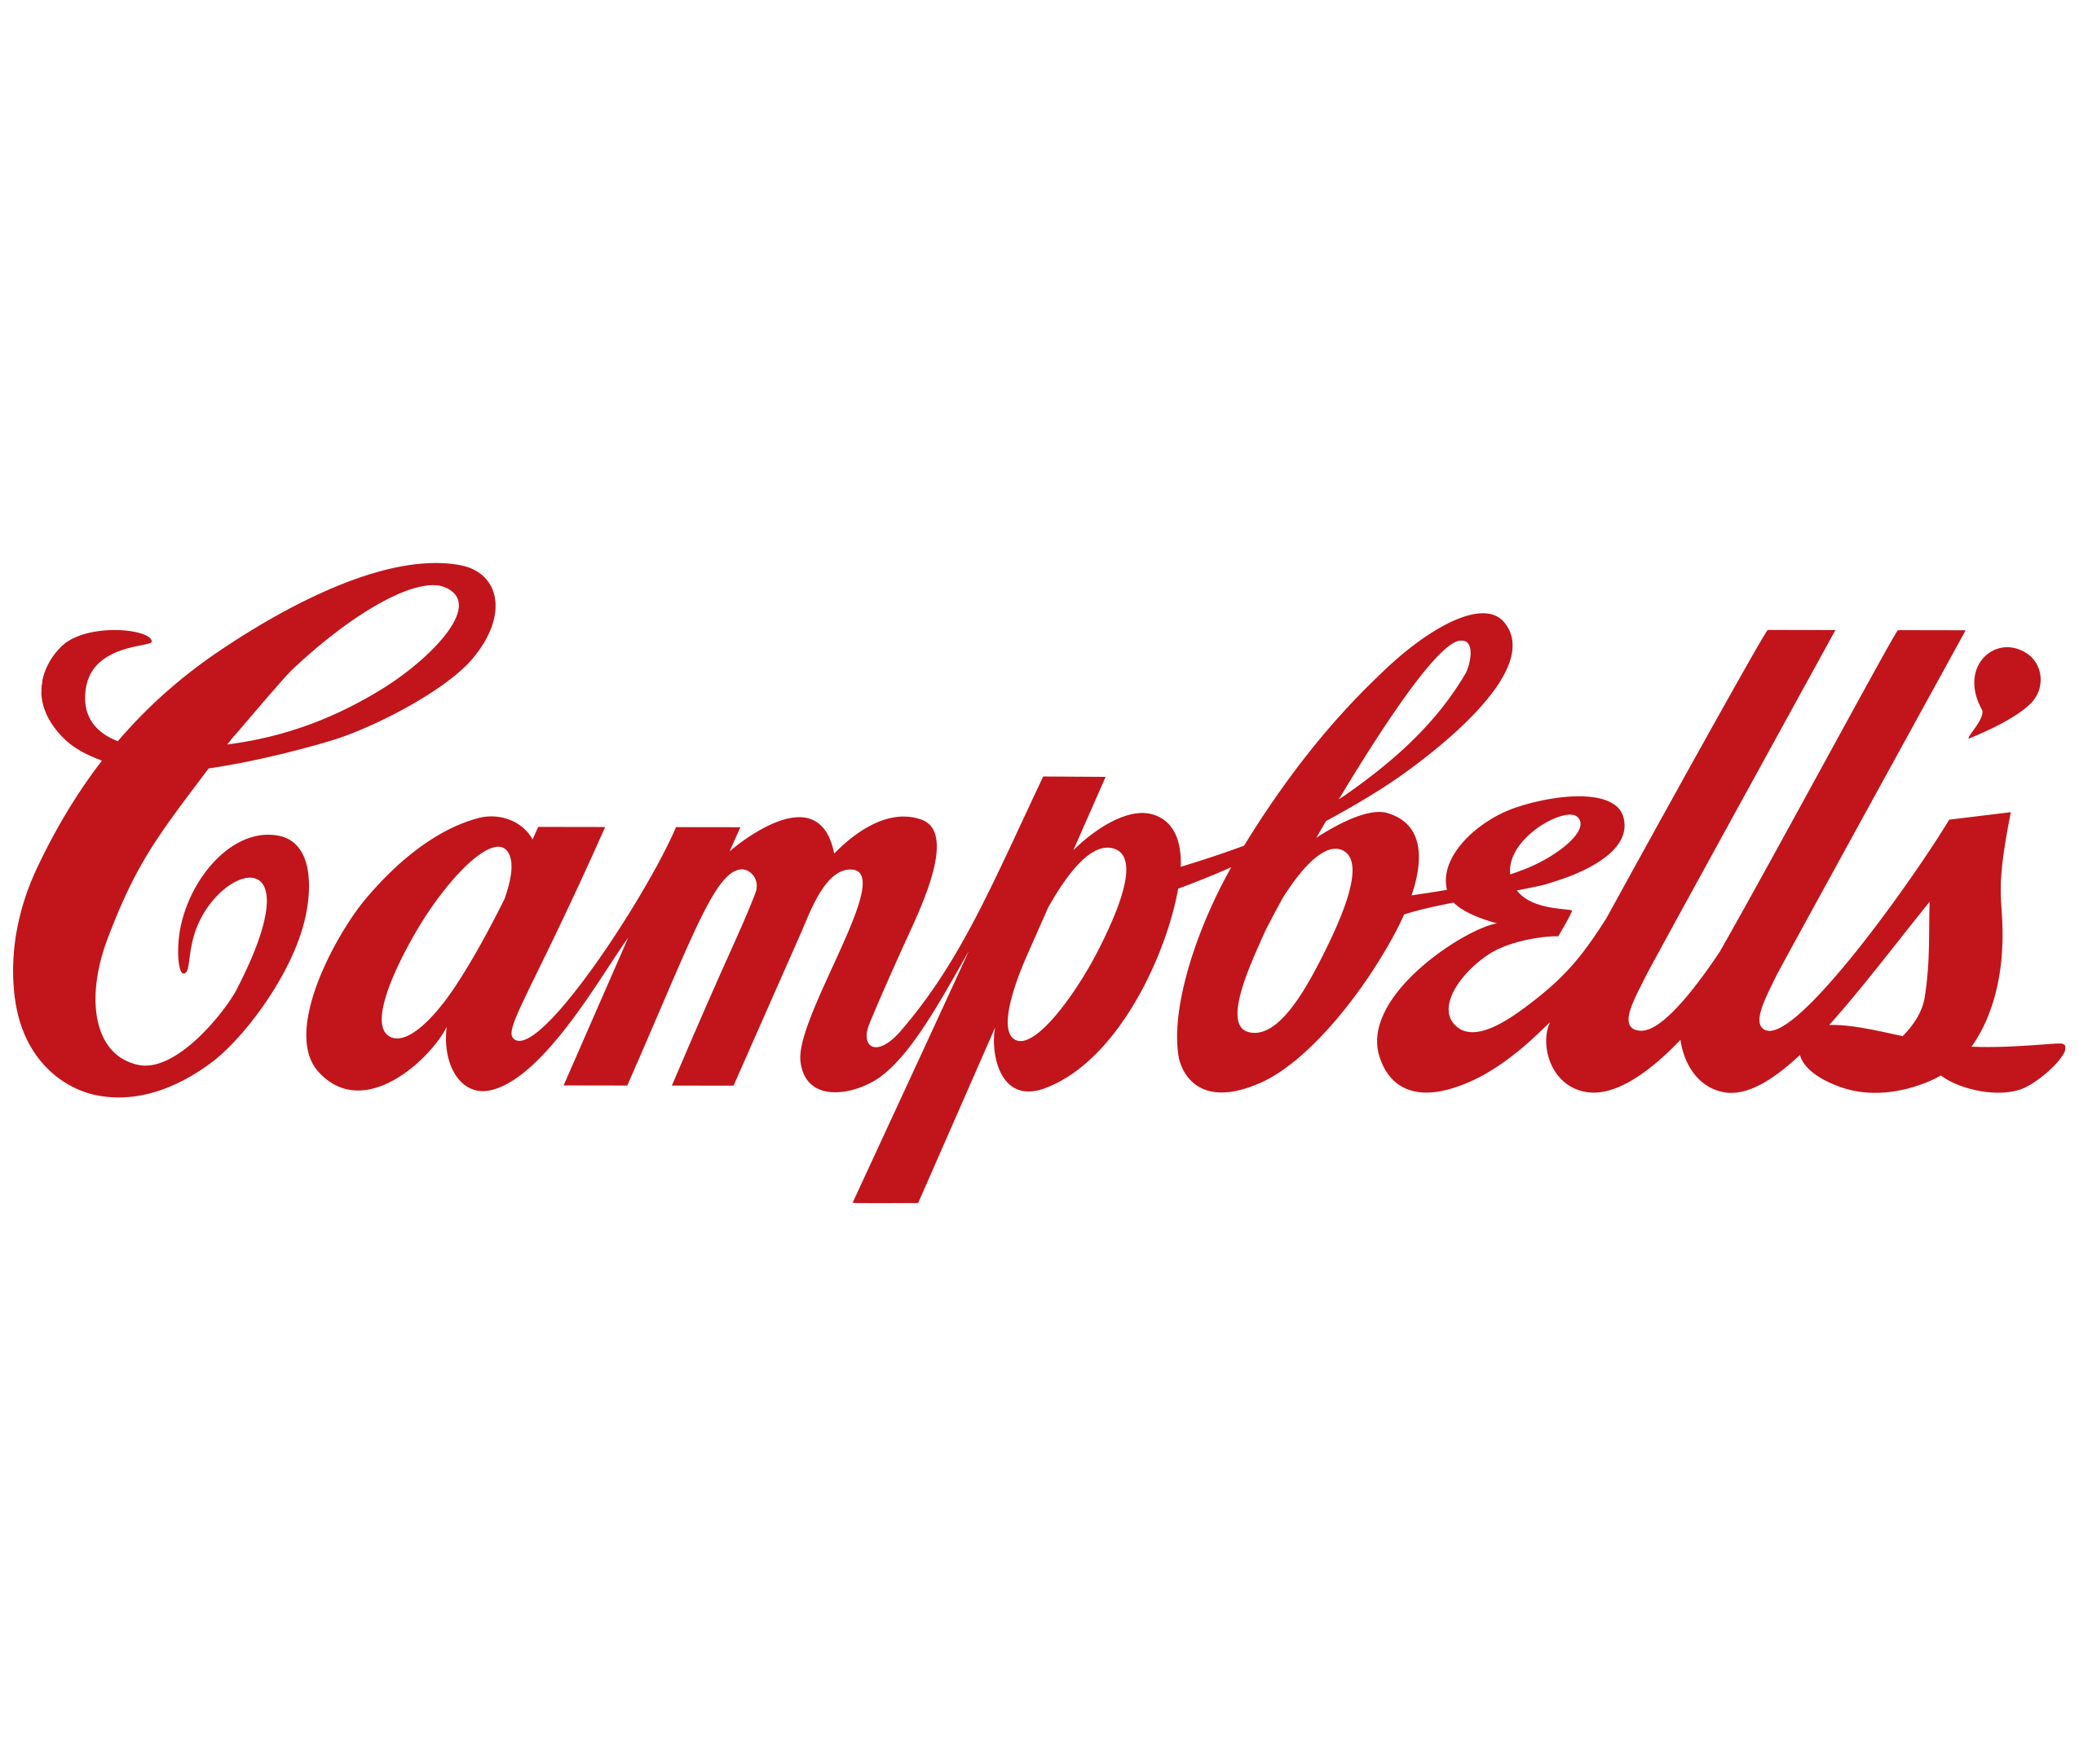 Campbells Logo Wallpaper